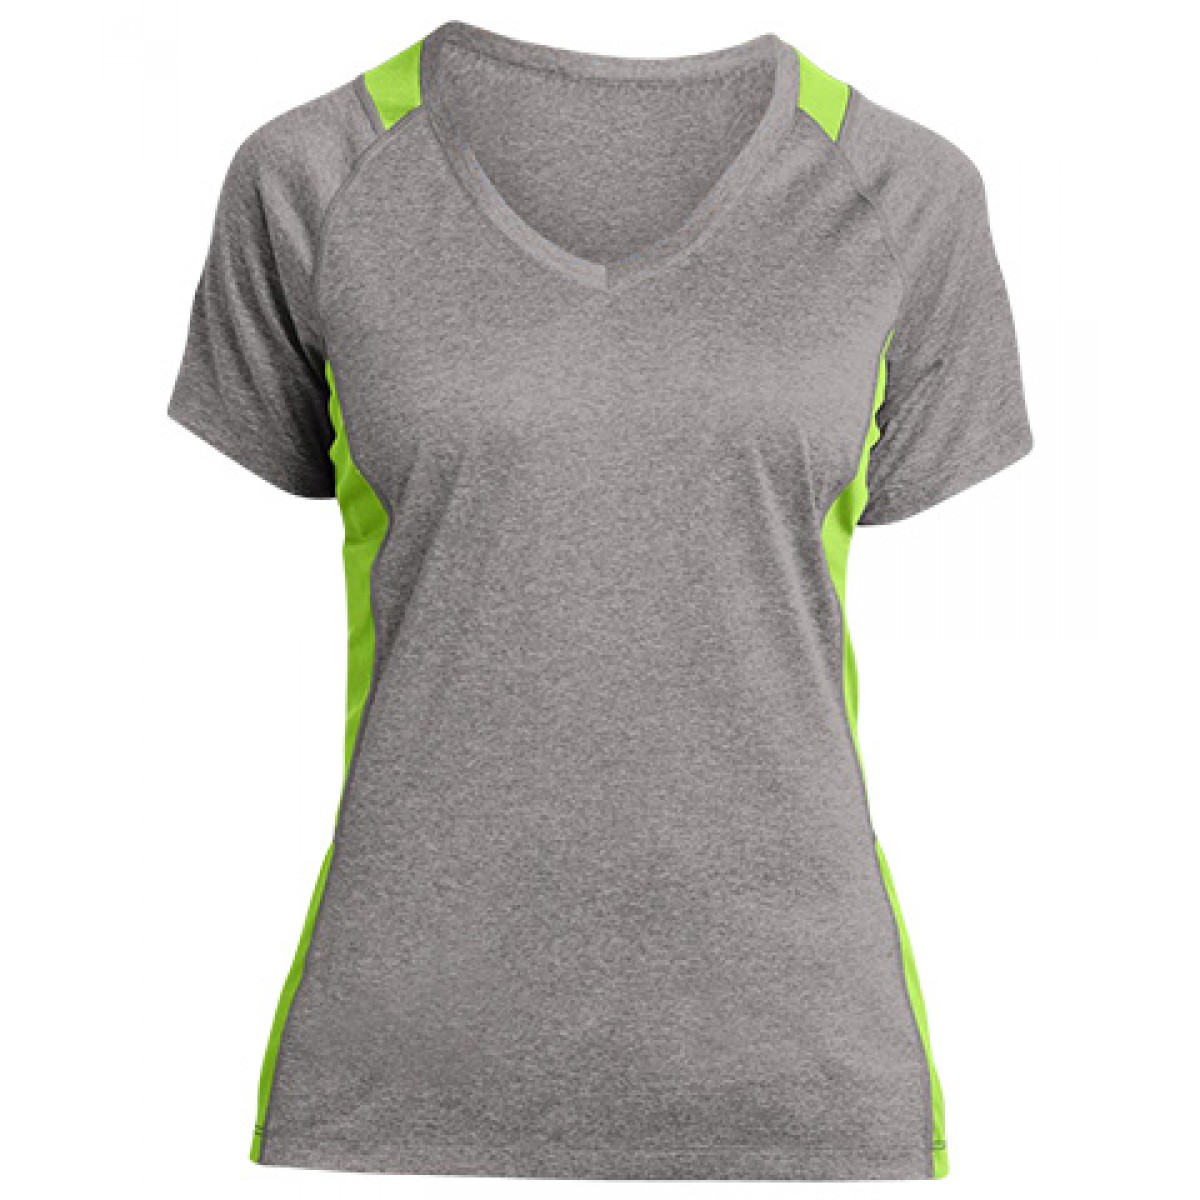 Ladies' Heather Colorblock Contender V-Neck Tee-Heather/Lime-M